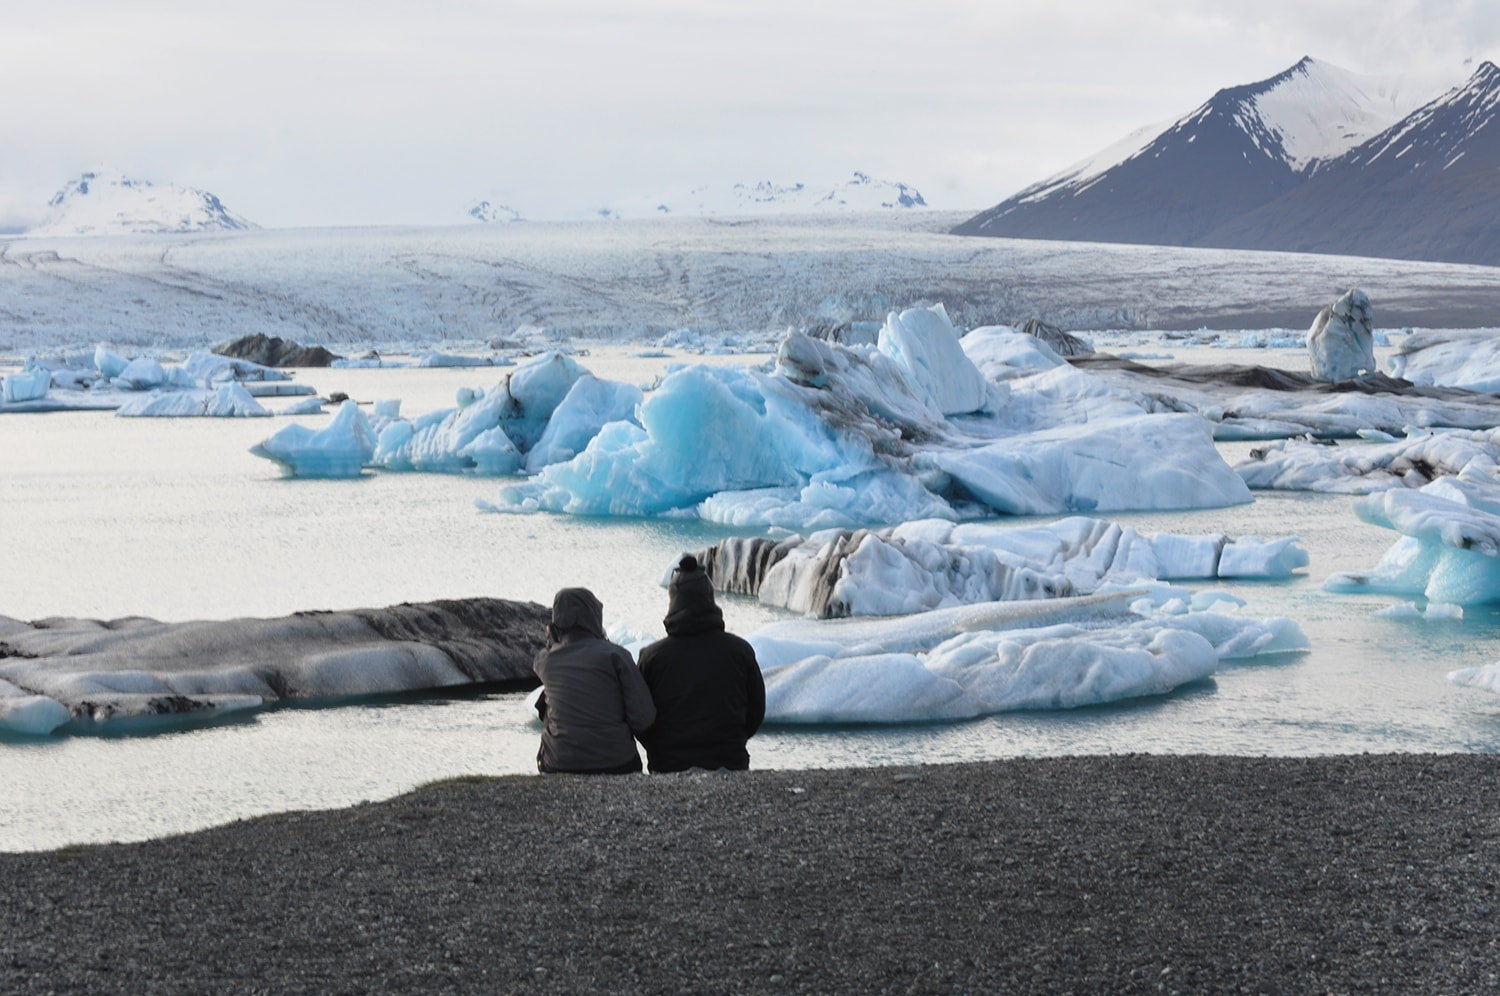 The glacier lagoon is fed by the glacier in the backgound